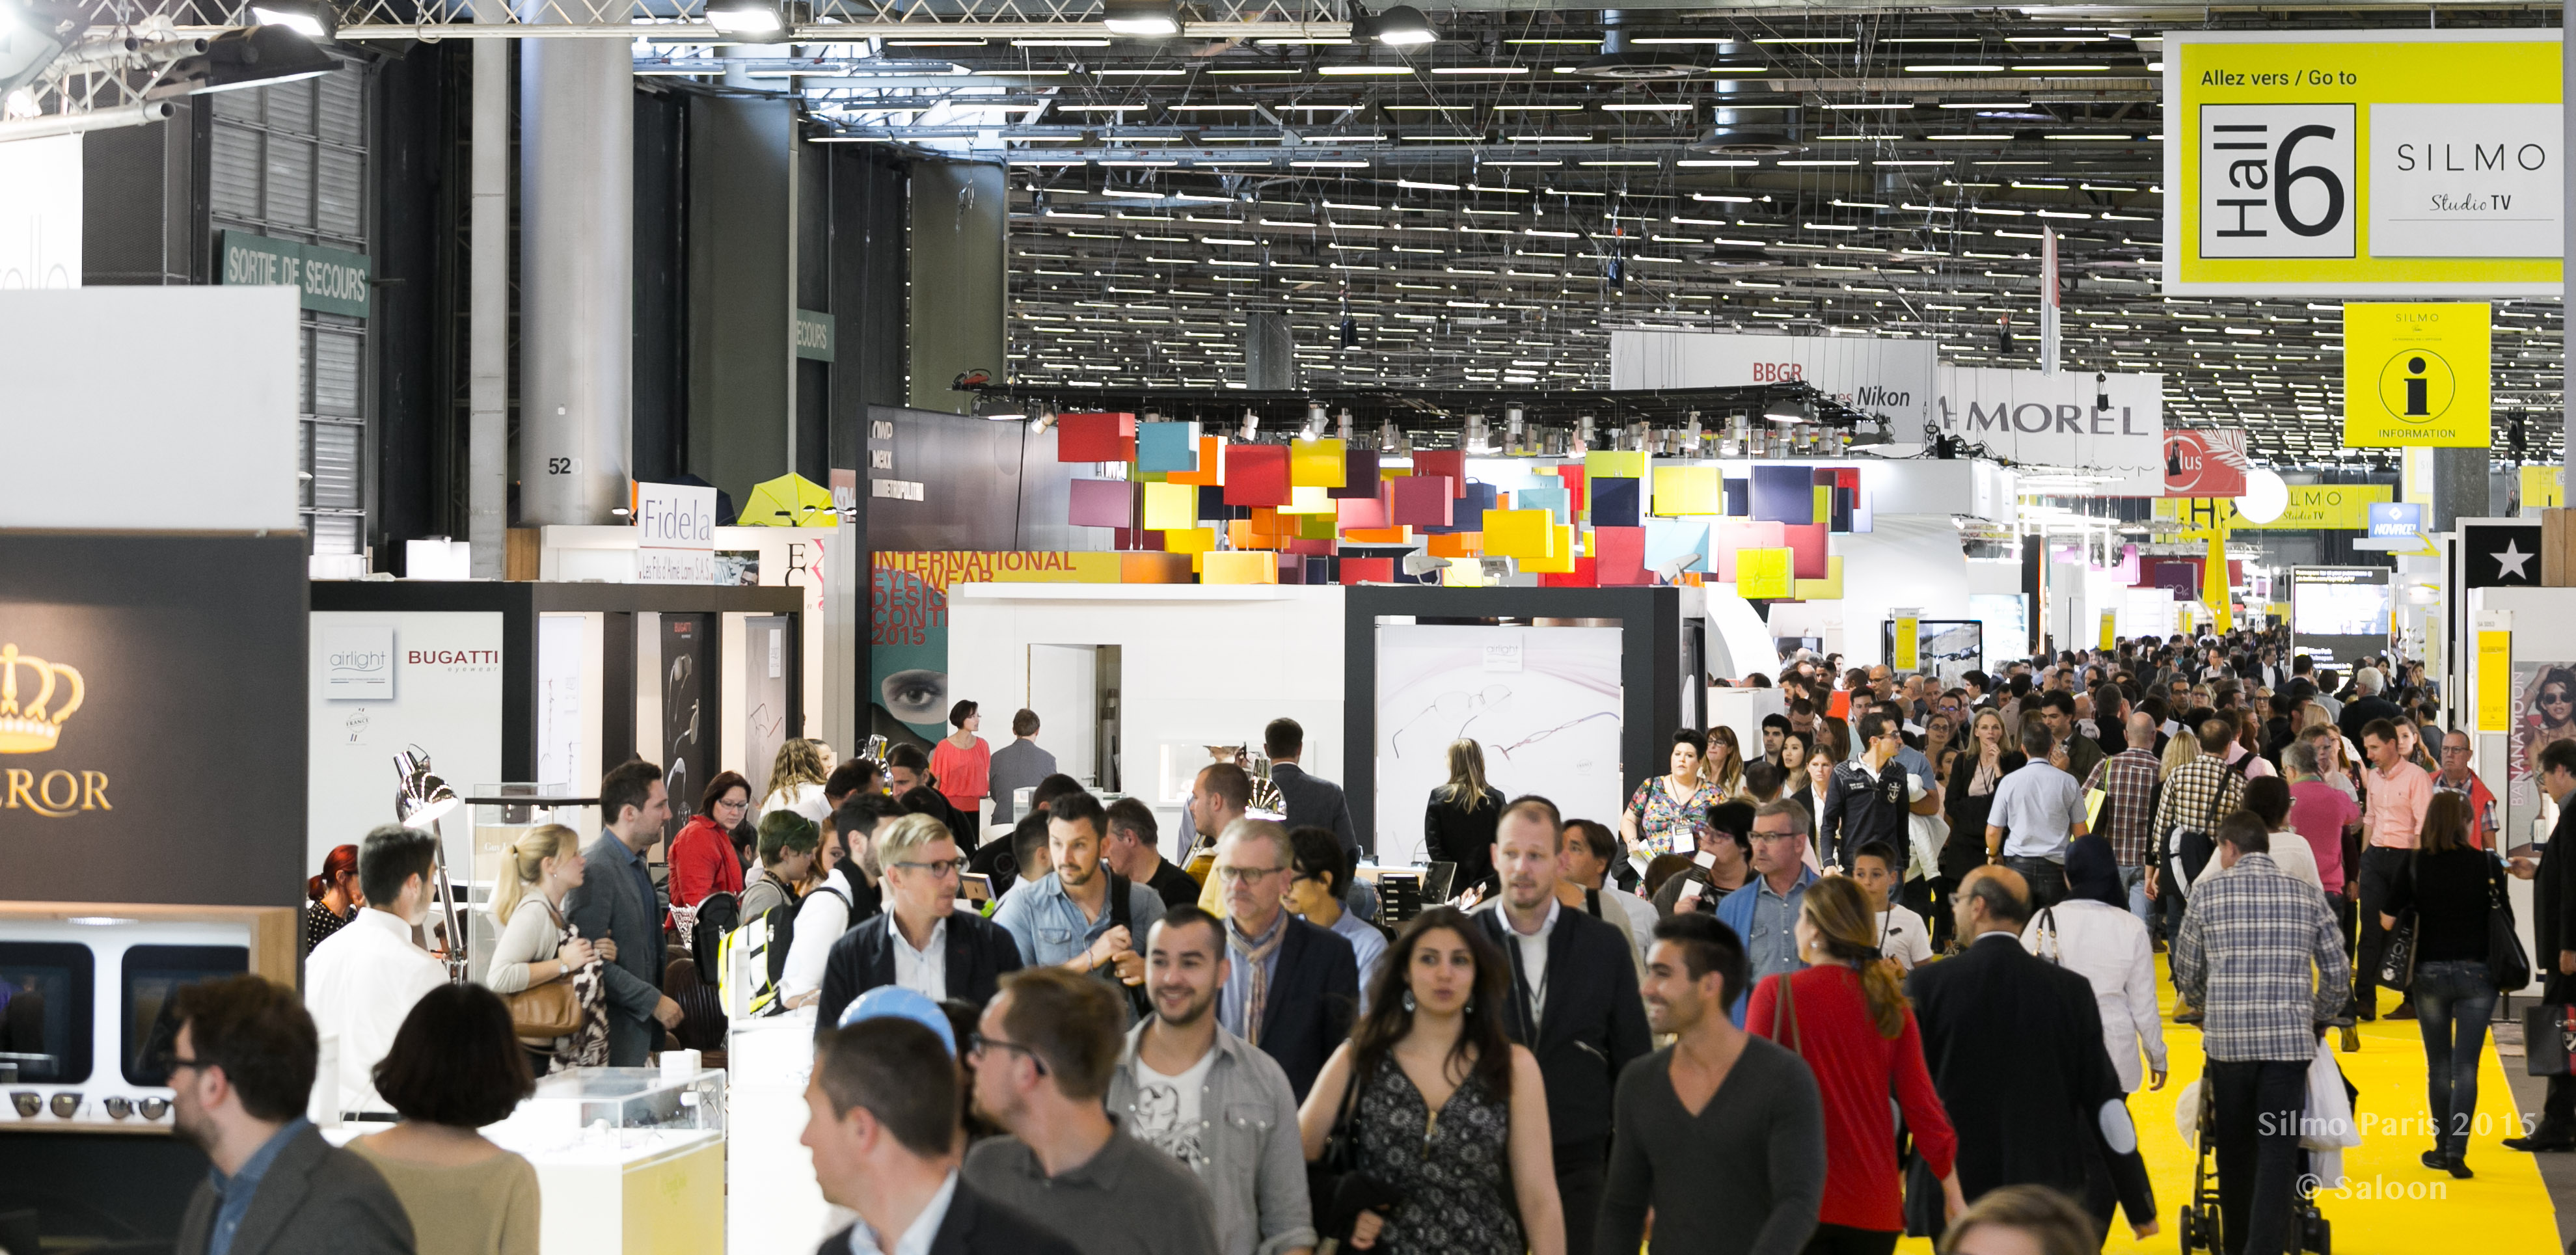 Celebrating technologies and trends at SILMO 2016